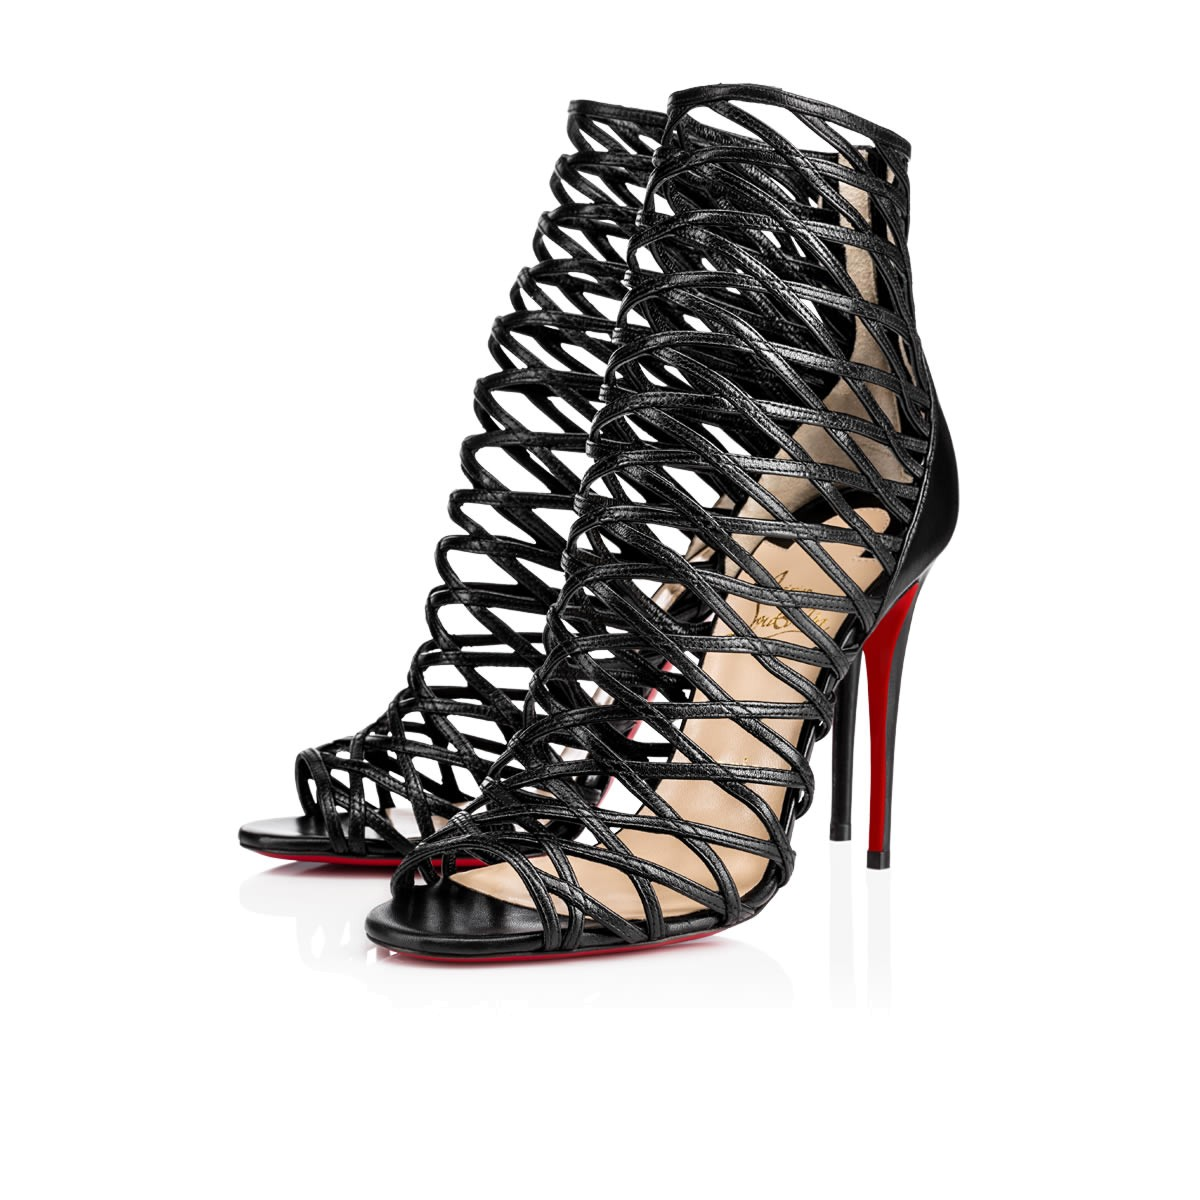 Christian-Louboutin-Spring-2015-Mille-Cinque-Strappy-Sandal.jpg